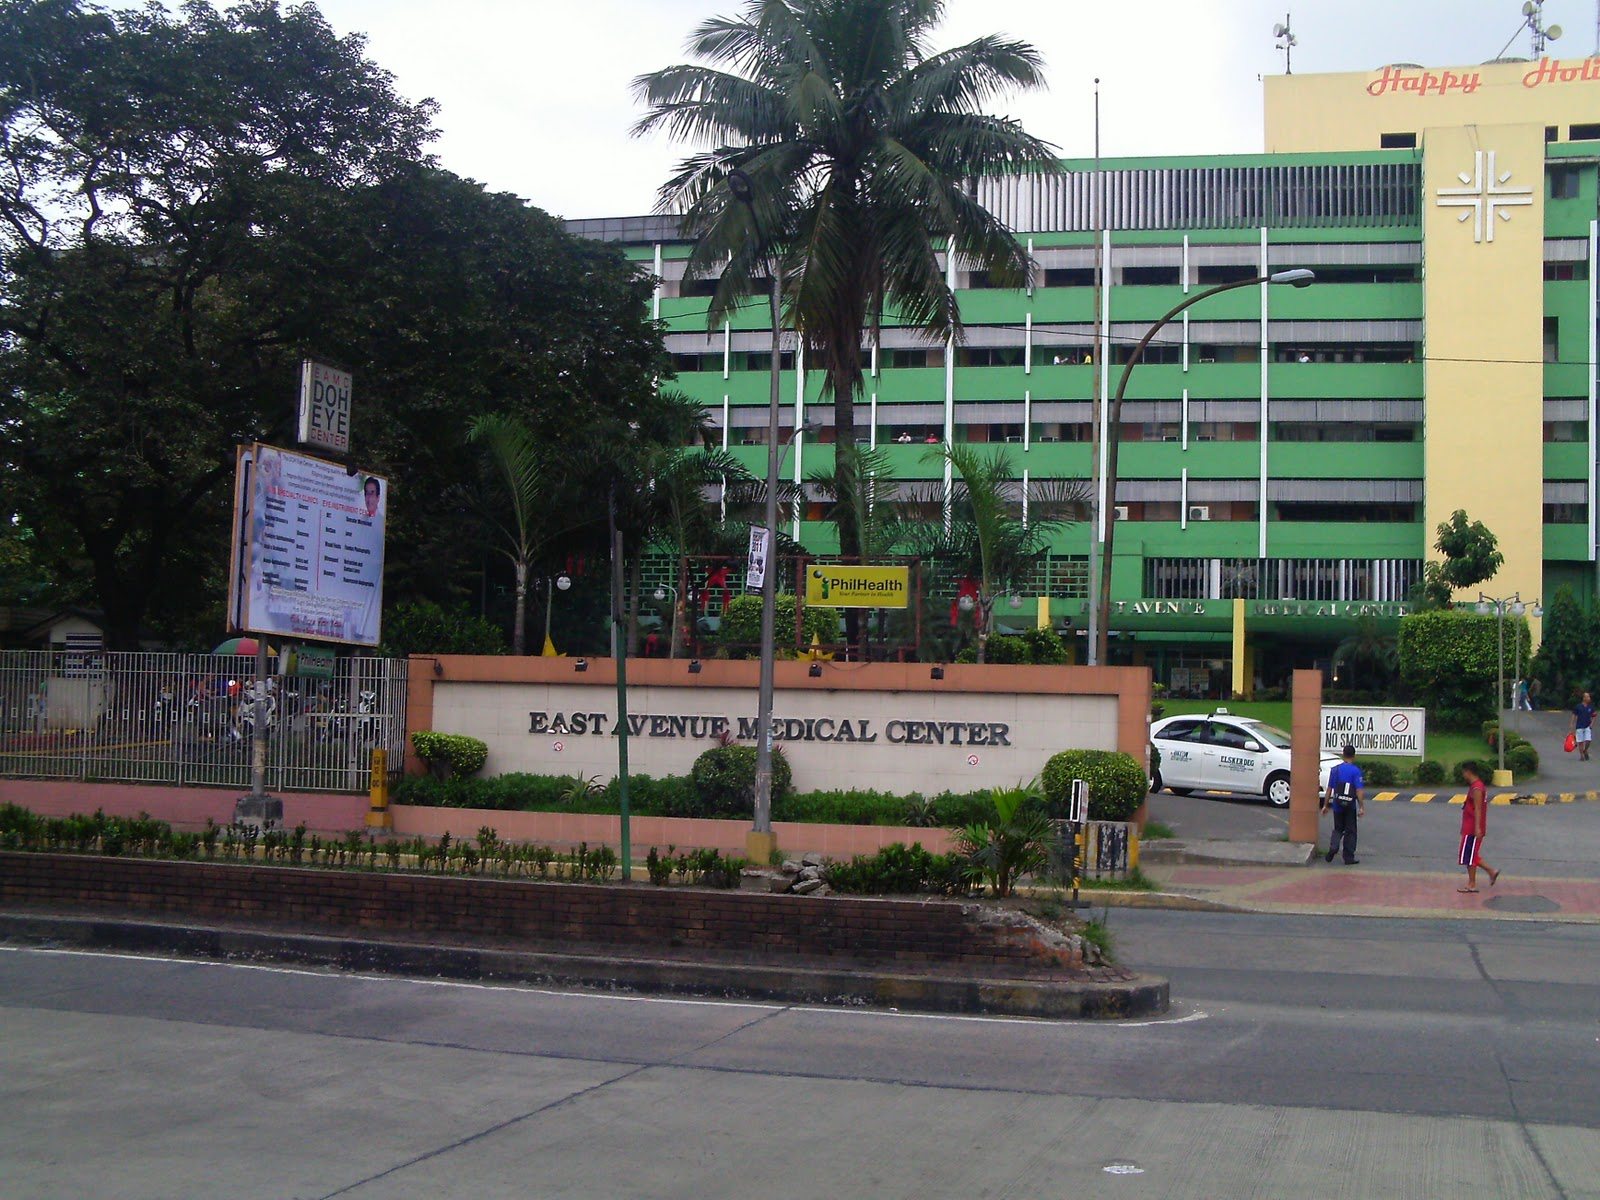 East Avenue Medical Center Website http://diliman-diary.blogspot.com/2010/12/update-on-rudolph-deer-who-remains.html#!